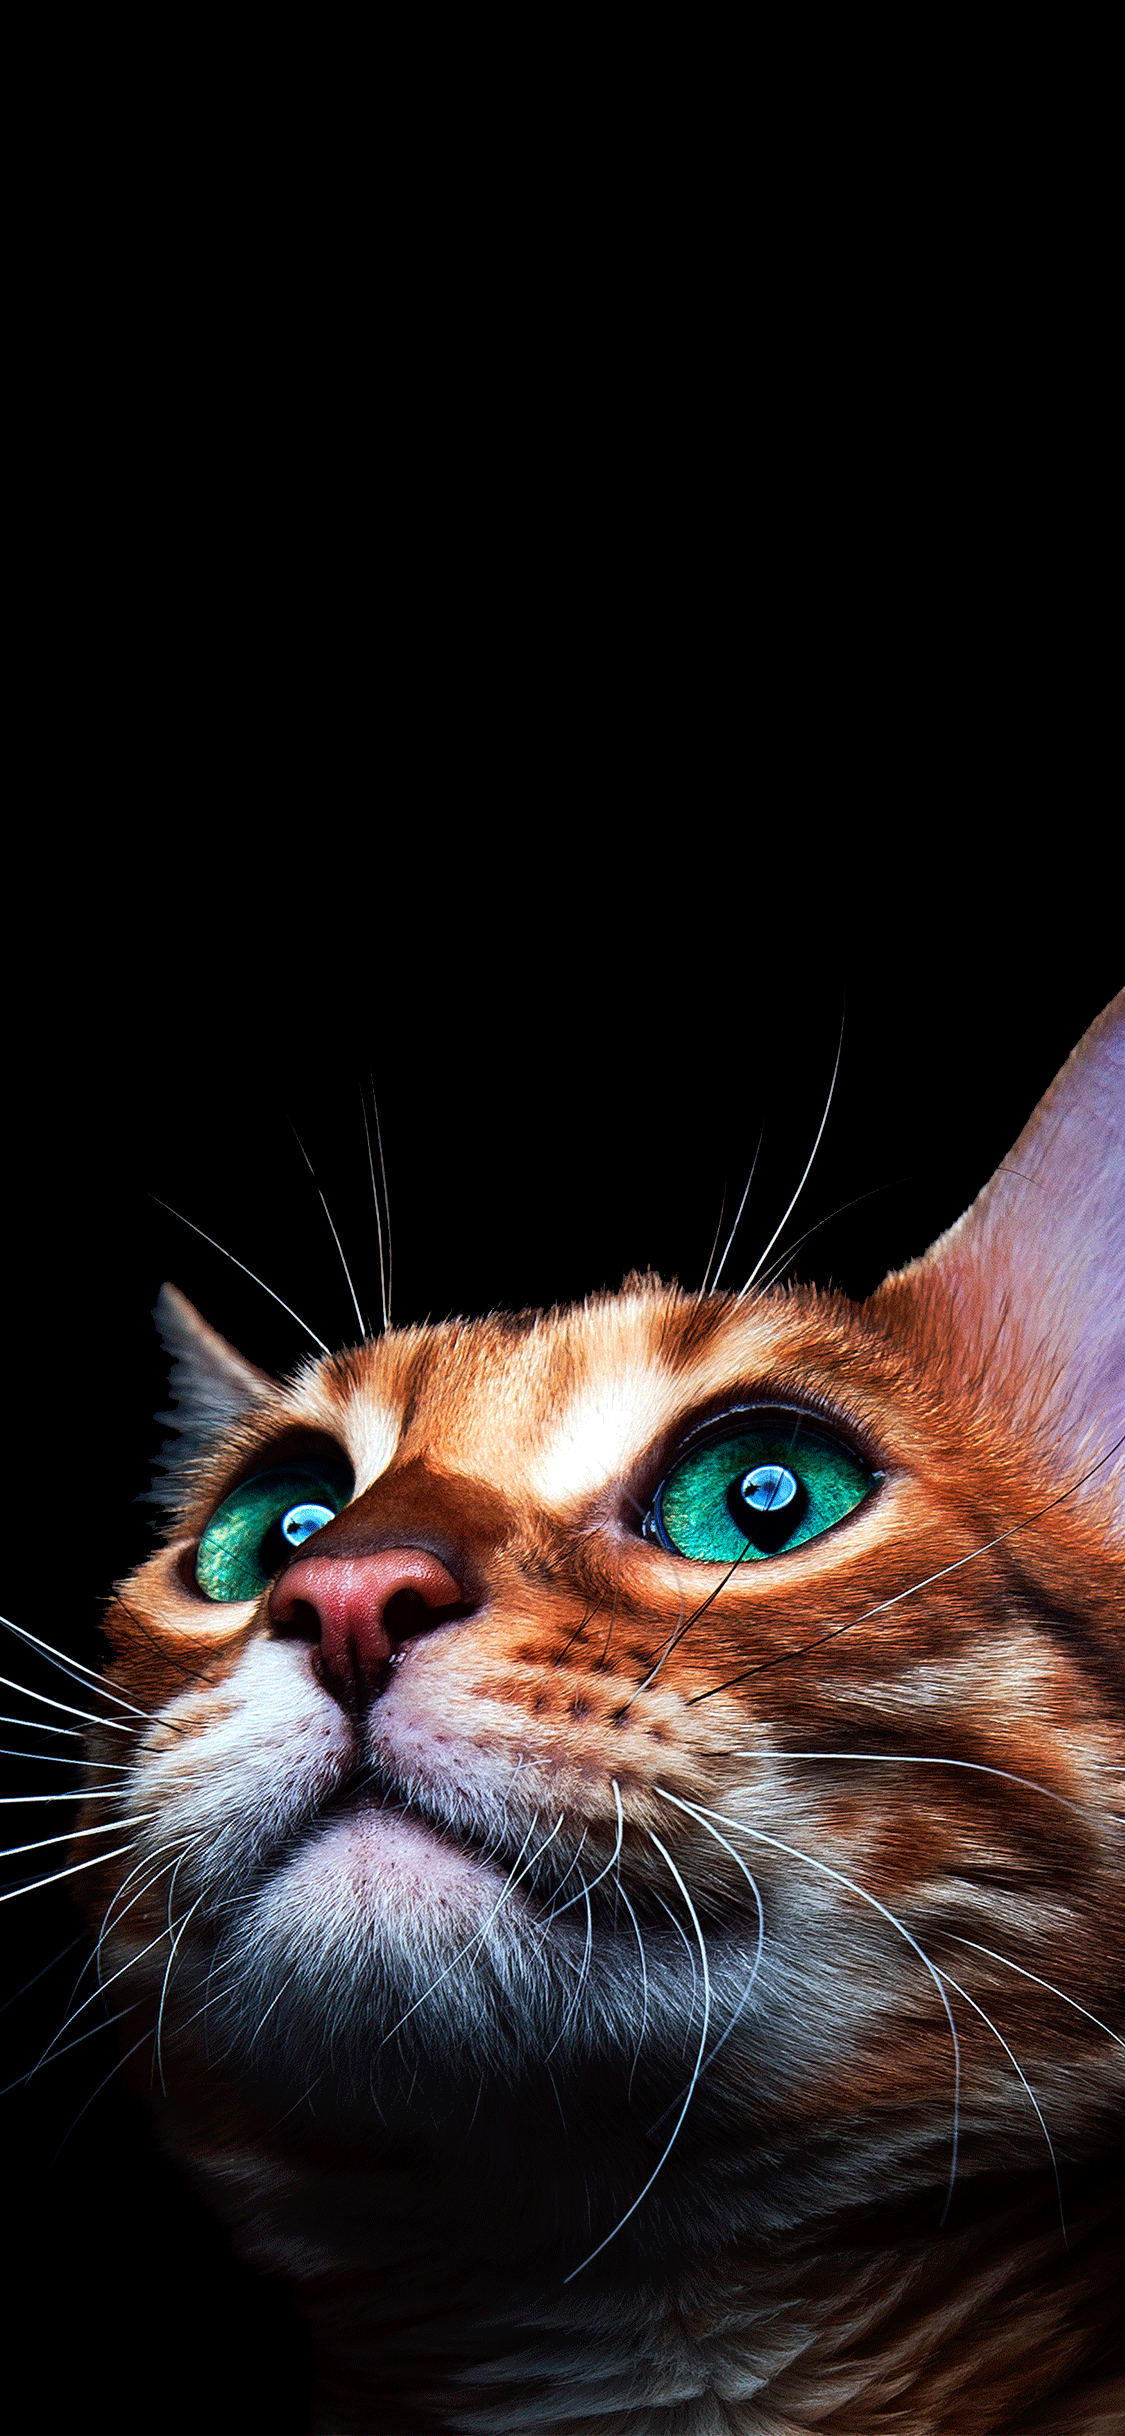 iPhone wallpaper cat green eyes Fonds d'écran iPhone du 09/07/2018